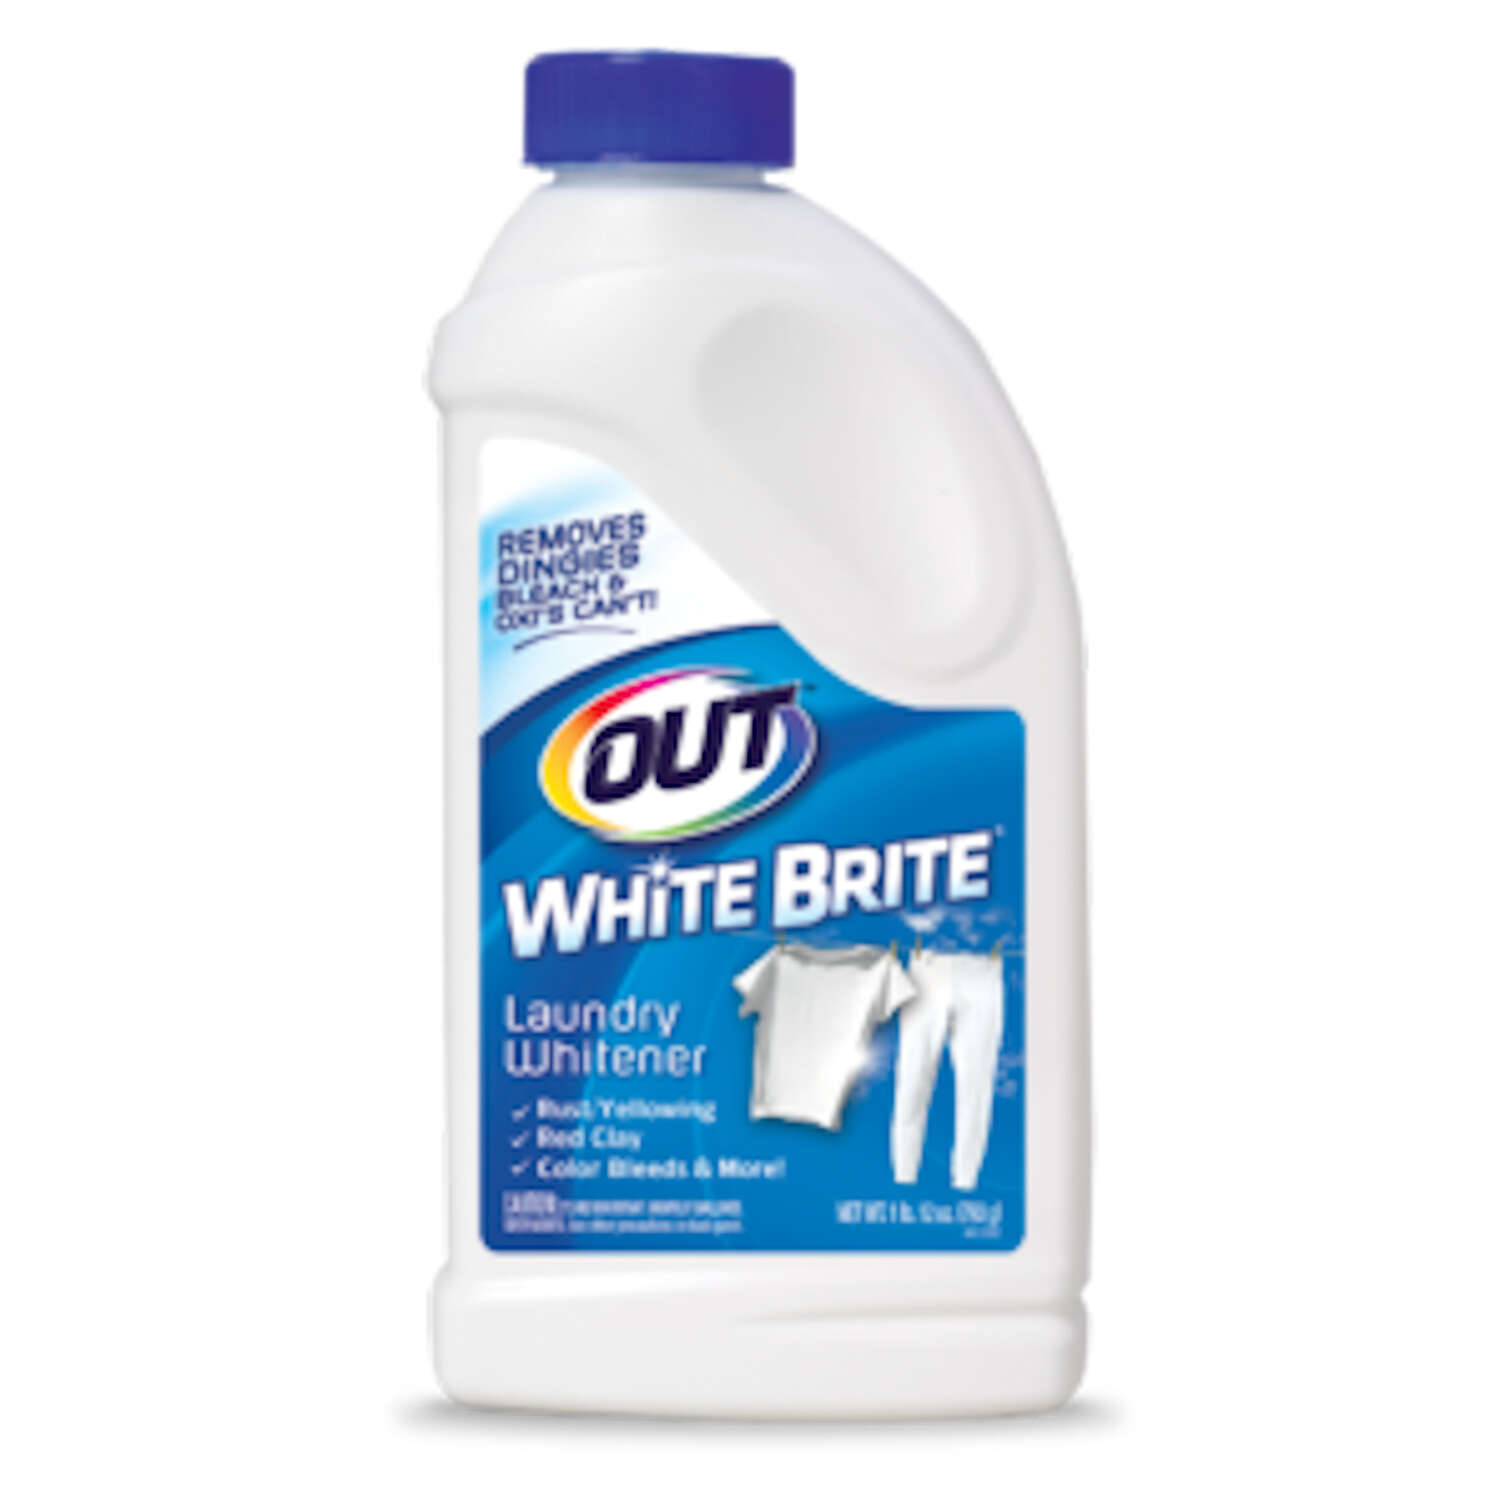 White Brite  No Scent Laundry Whitener  Powder  1 lb. 12 oz.  1 pk